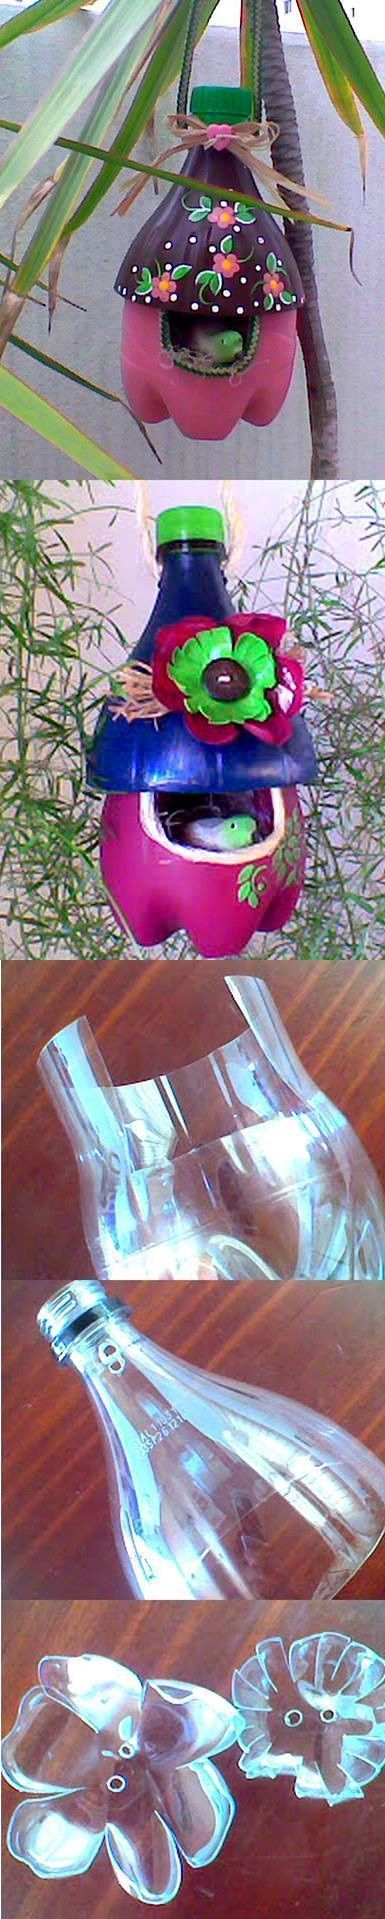 DIY Easy To Make Plastic Bottle Bird House